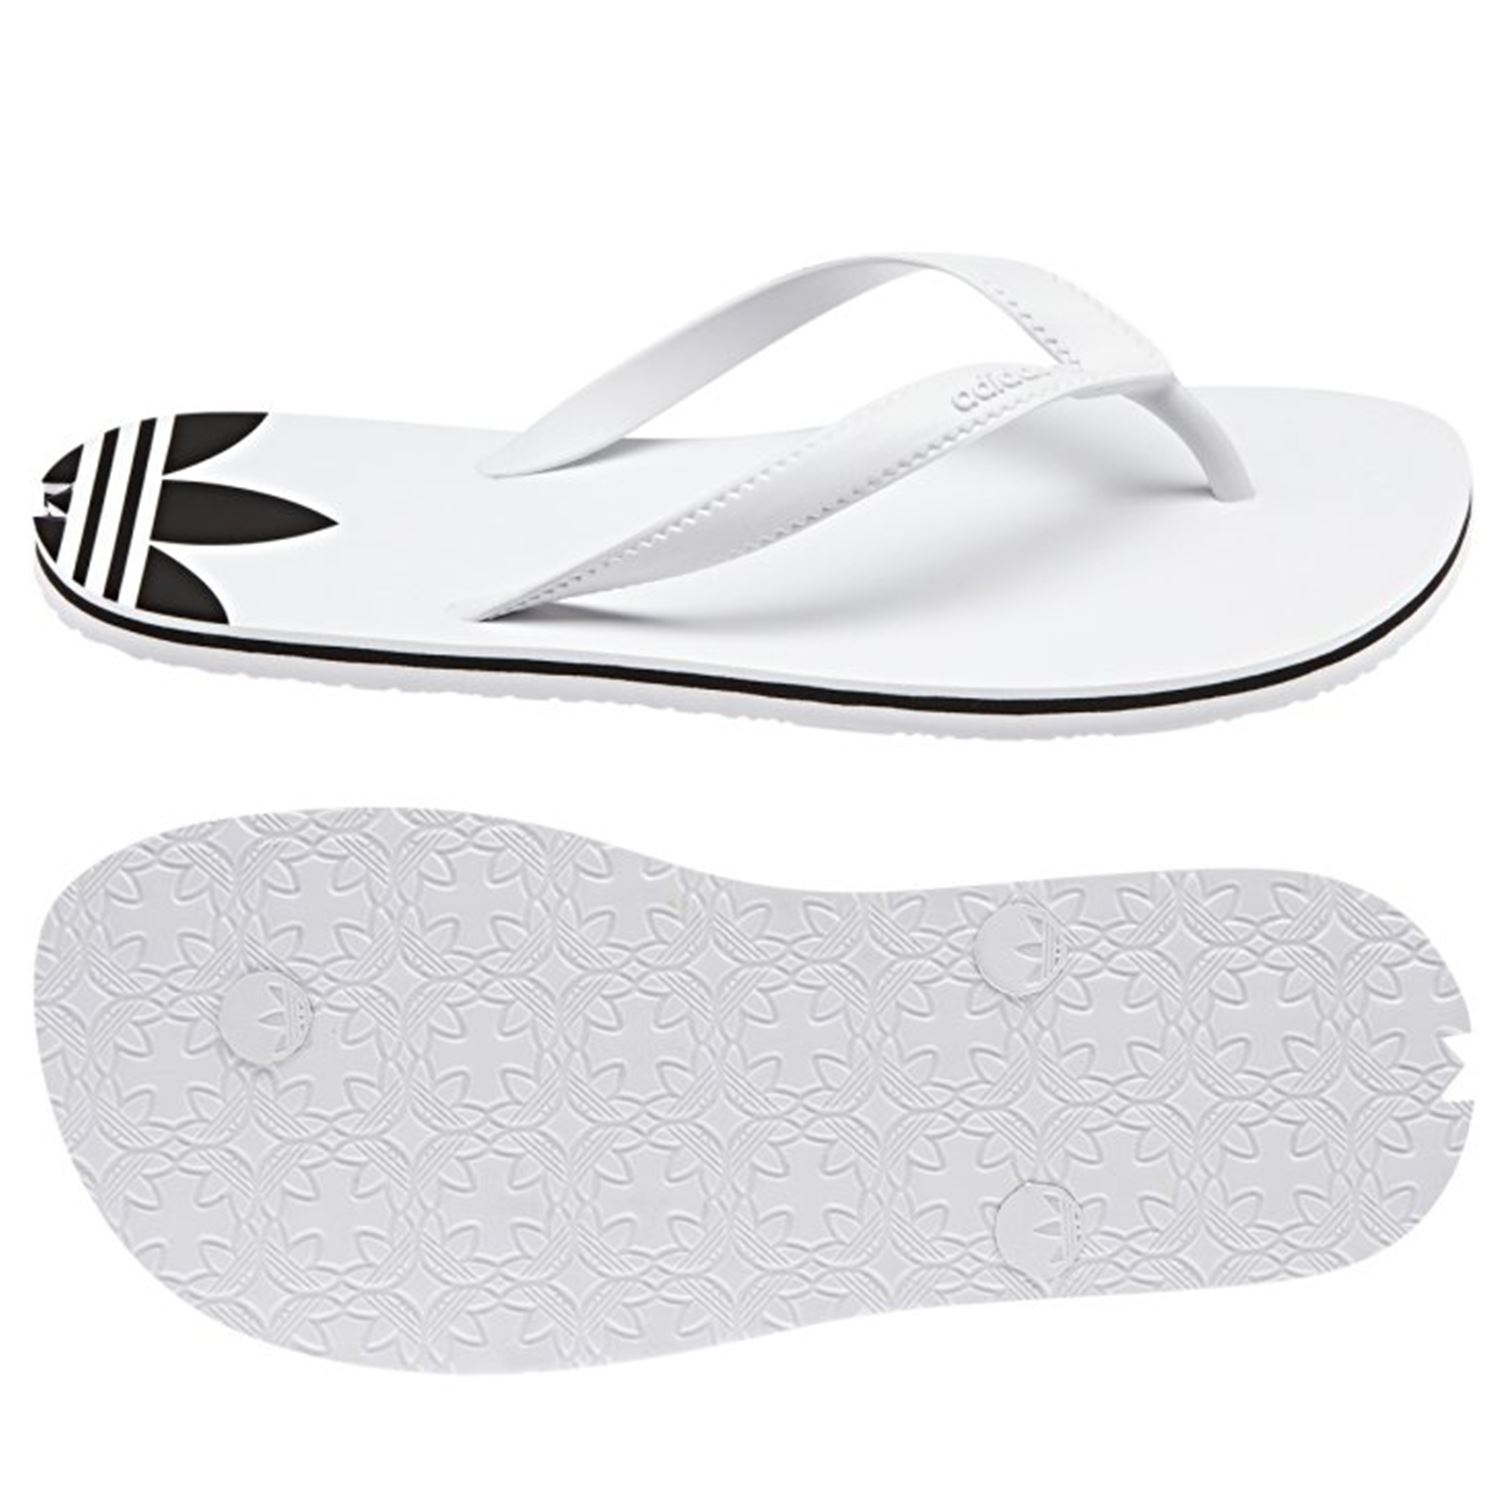 7644a2c11edf adidas ORIGINALS ADI SUN THONG FLIP FLOPS SANDALS WHITE WOMEN S KIDS BEACH  NEW